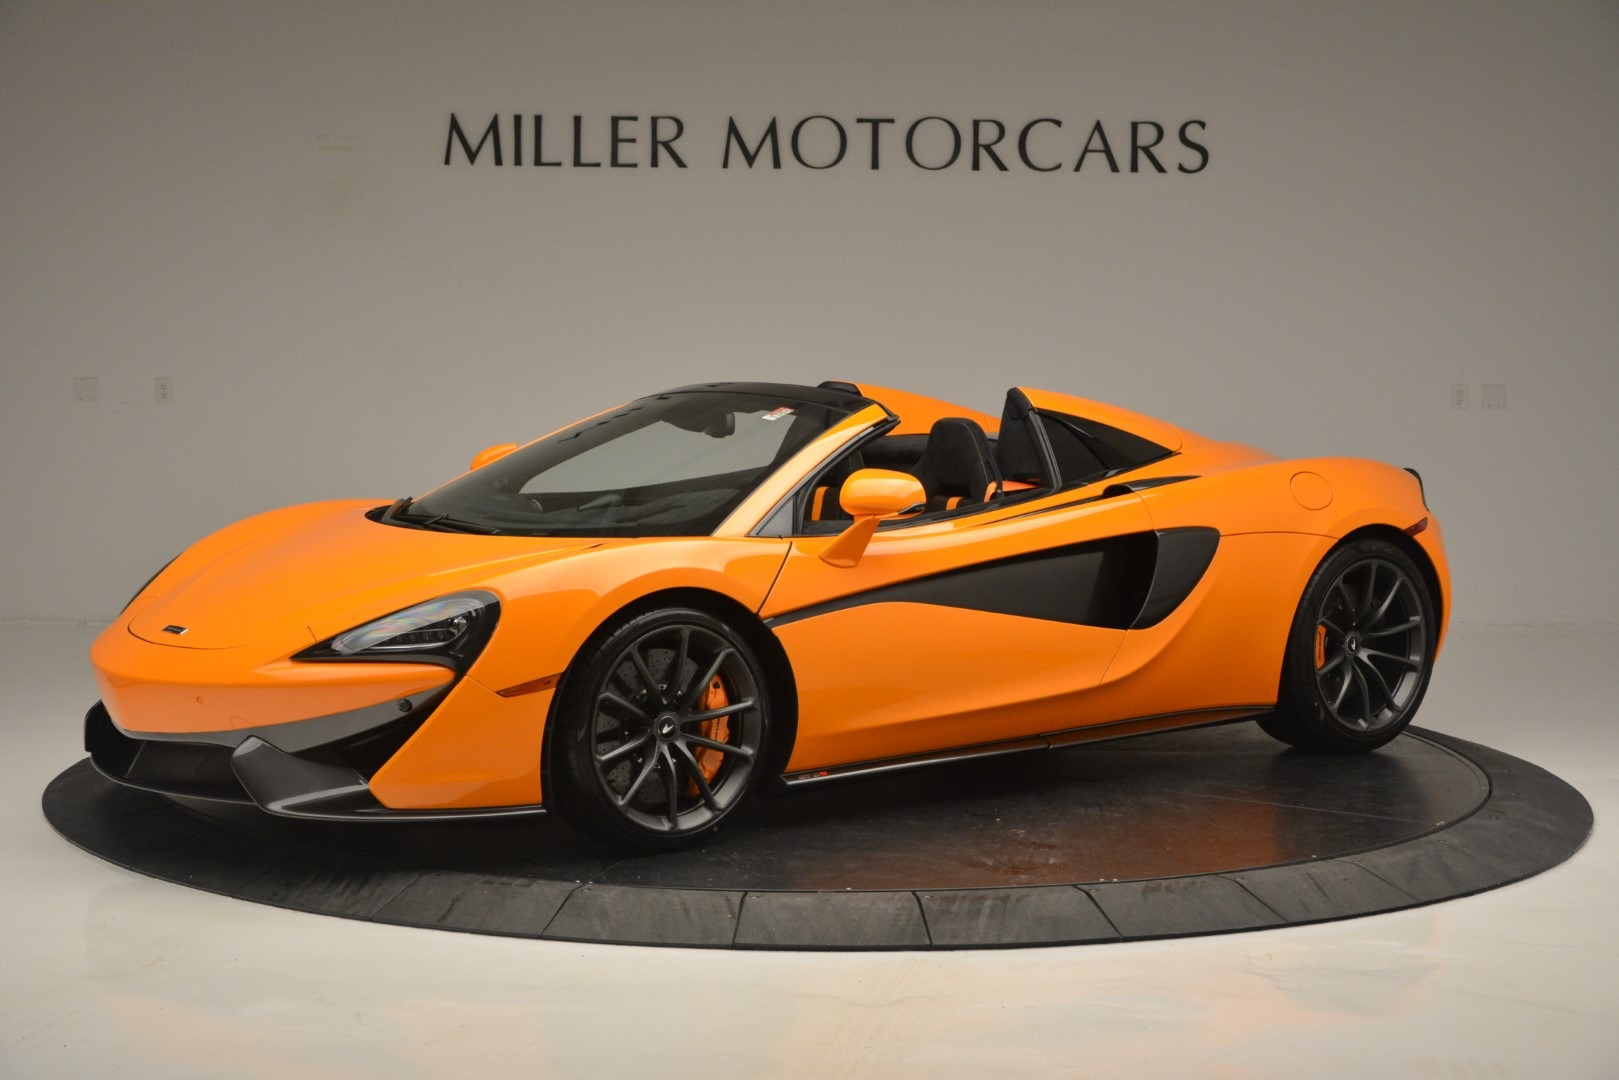 Used 2019 McLaren 570S SPIDER Convertible for sale $240,720 at Rolls-Royce Motor Cars Greenwich in Greenwich CT 06830 1